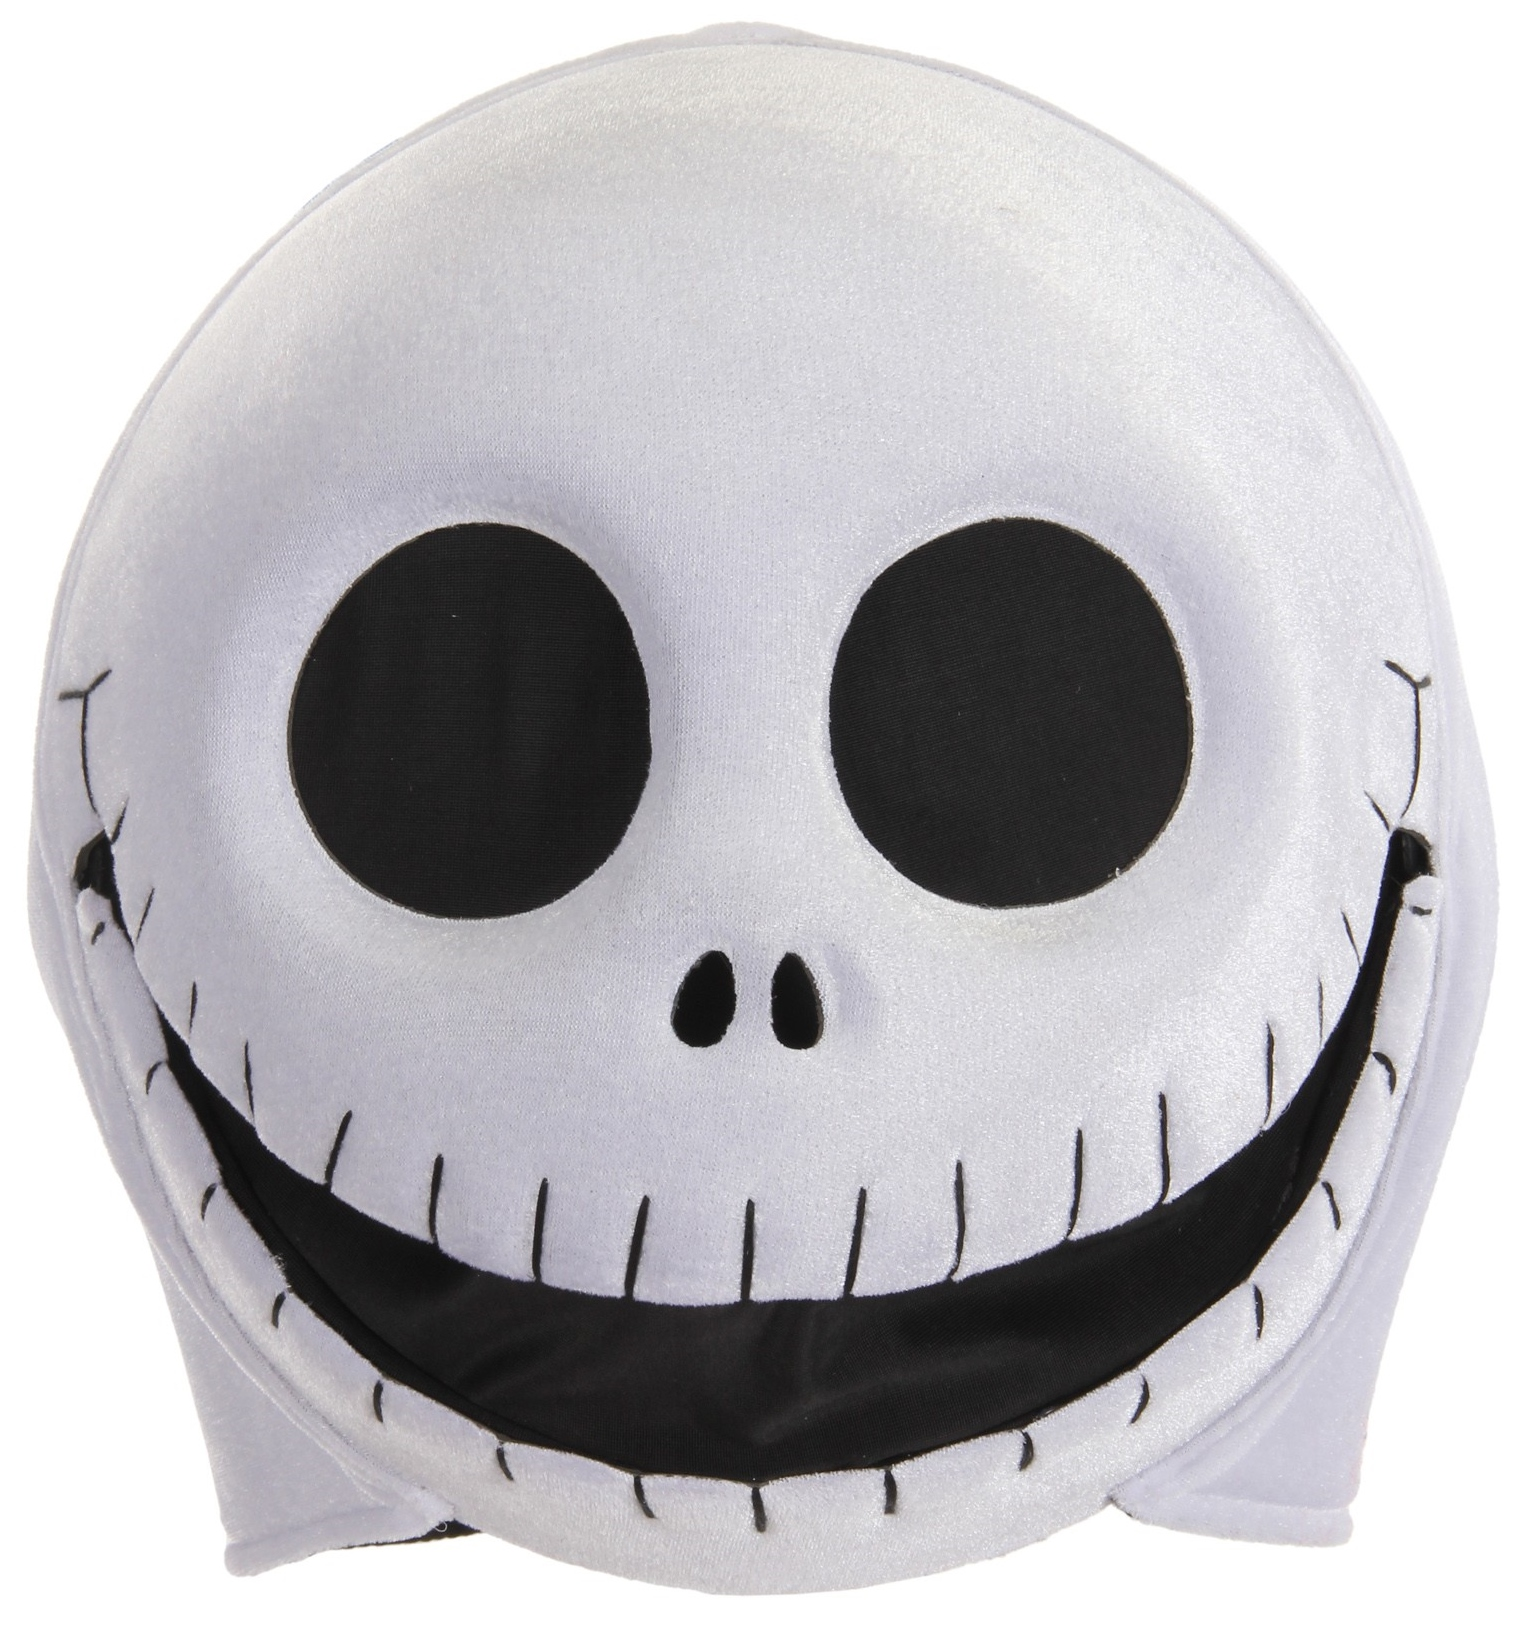 e9b02b95d4449 Make every day Halloween with this Disney Tim Burton s The Nightmare Before  Christmas Jack Skellington Plush Mouth Mover mask by elope.